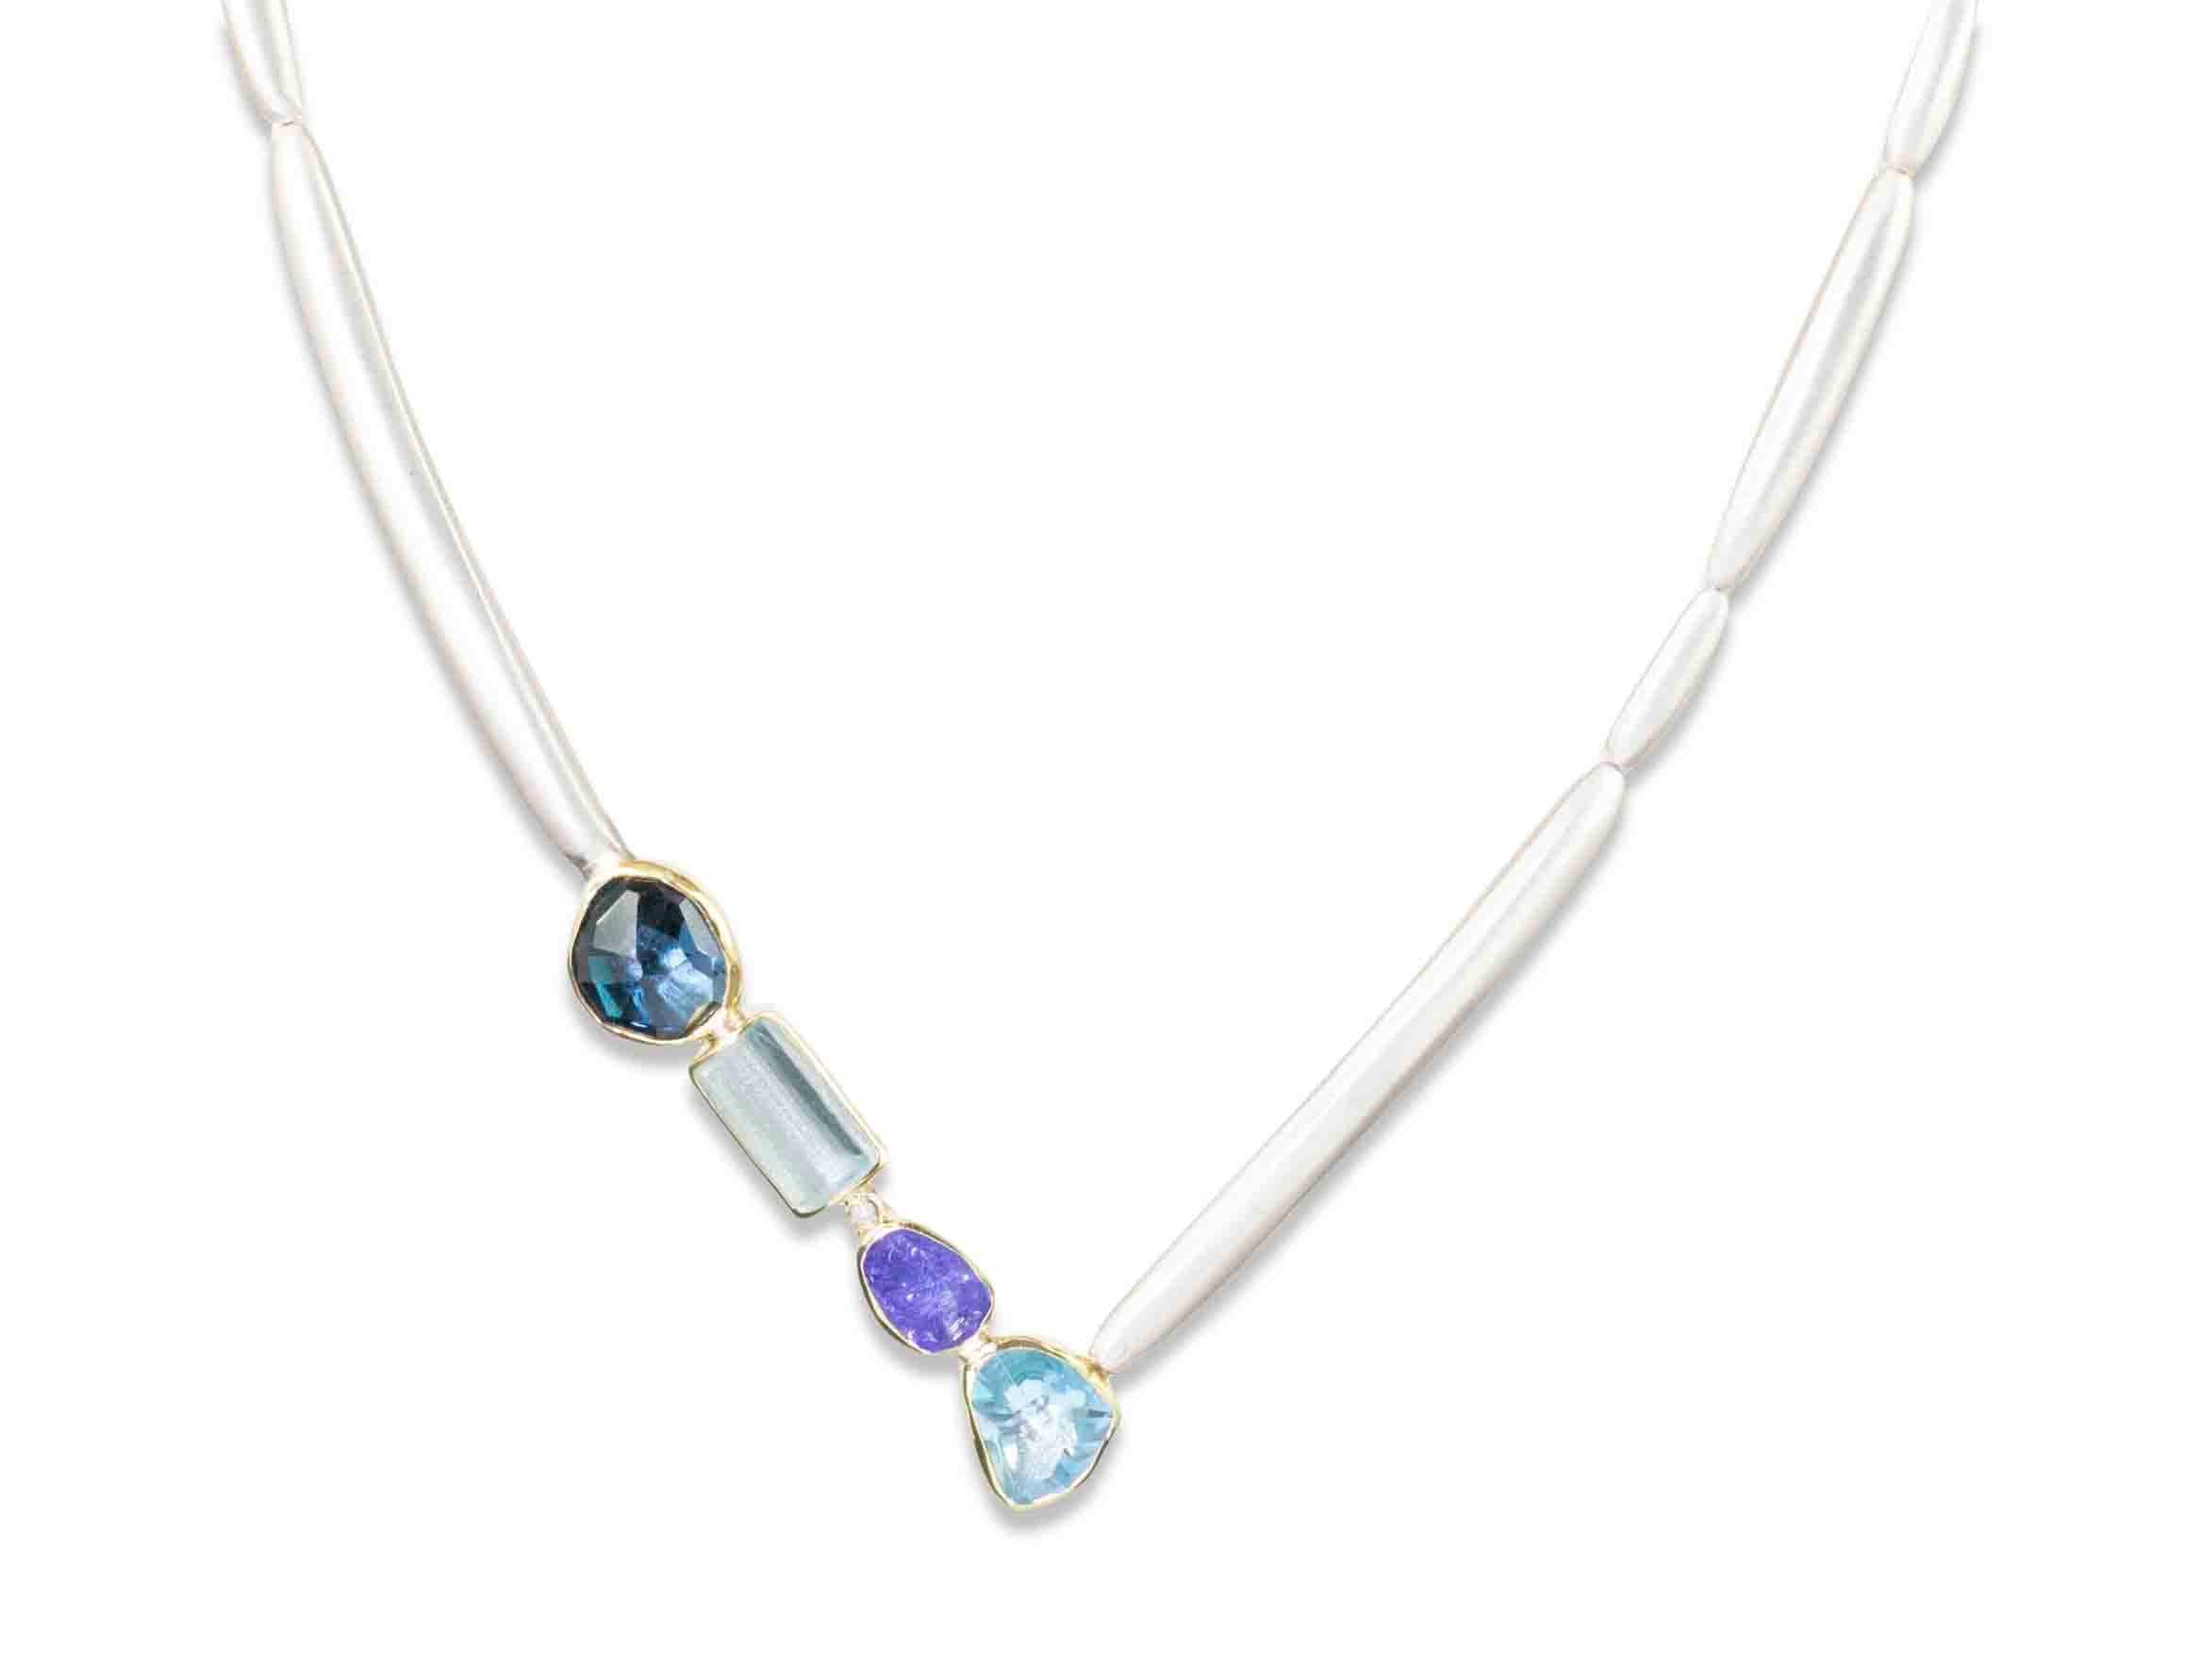 Aquamarine, Tanzanite, Blue Topaz and Diamond Necklace